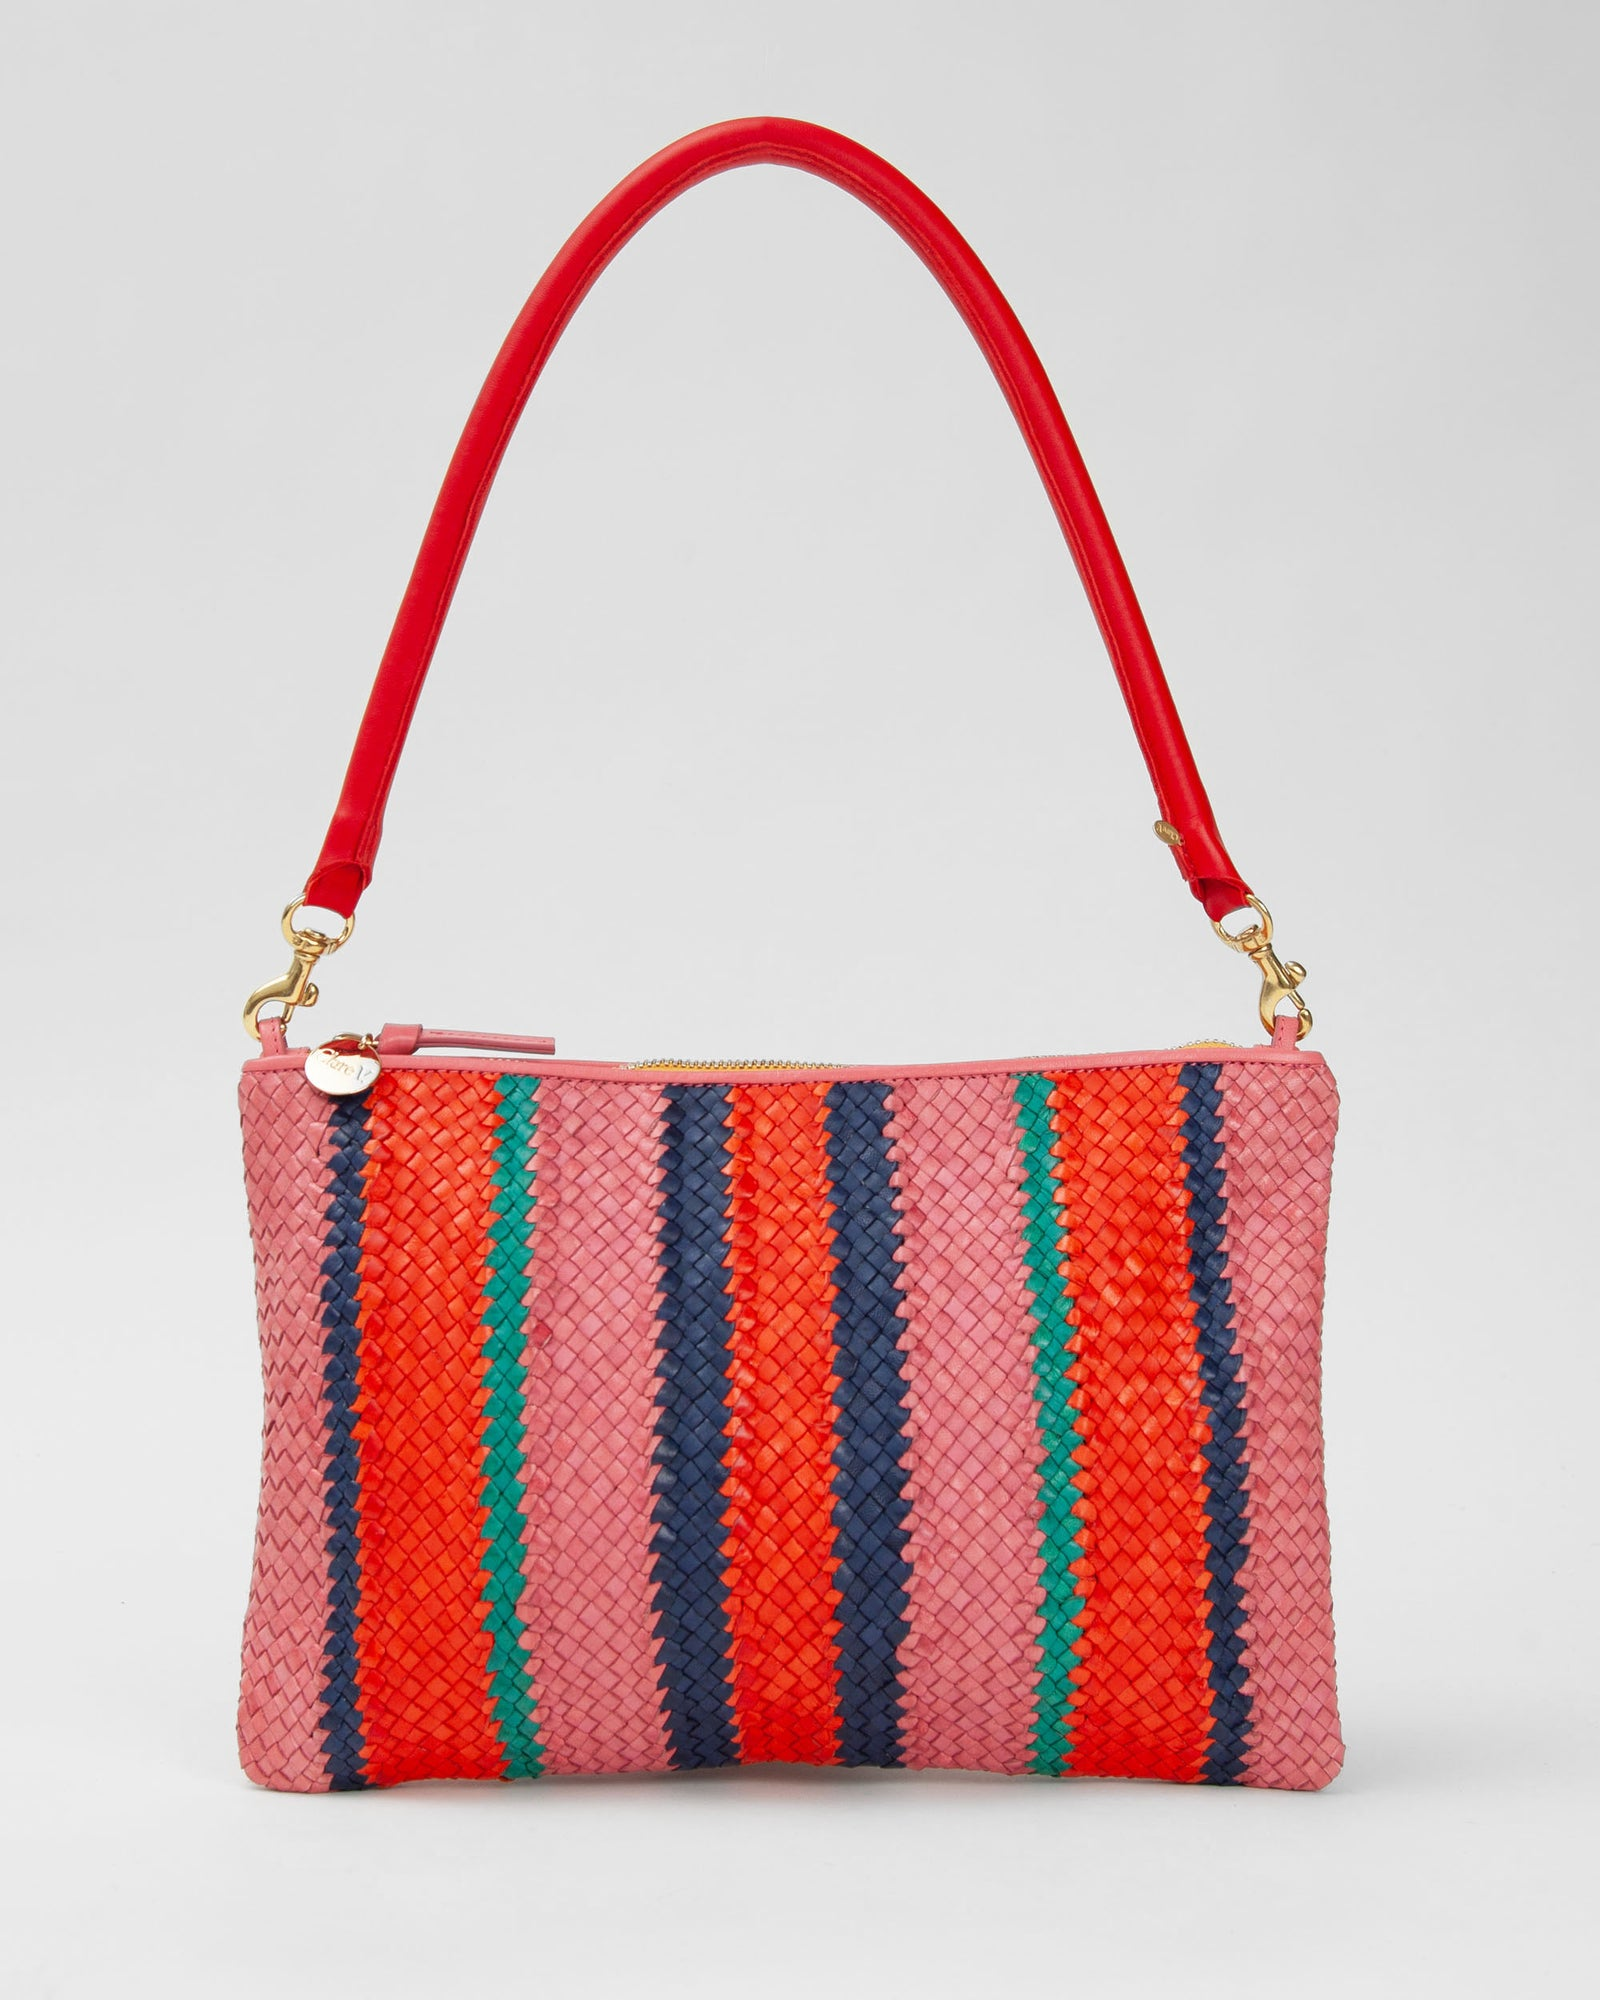 Petal with Poppy, Navy & Mint Opal Woven Stripes Flat Clutch w/ Tabs - with Cherry Red Tubular Shoulder Strap